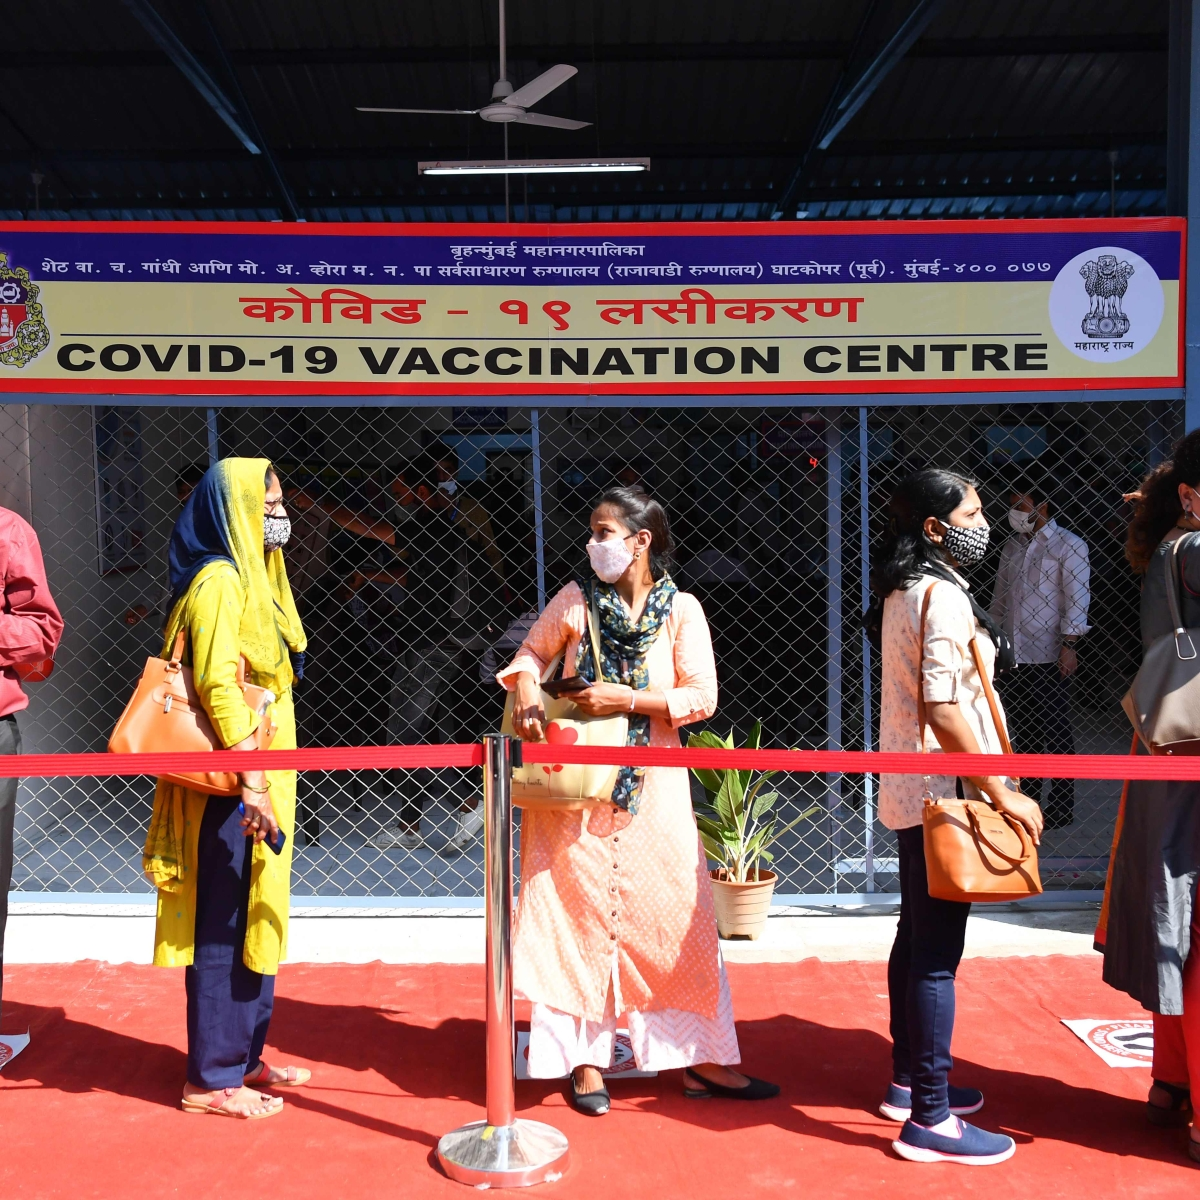 COVID-19 in Mumbai: List of vaccination centres issued by BMC; most centres to open after 12 pm